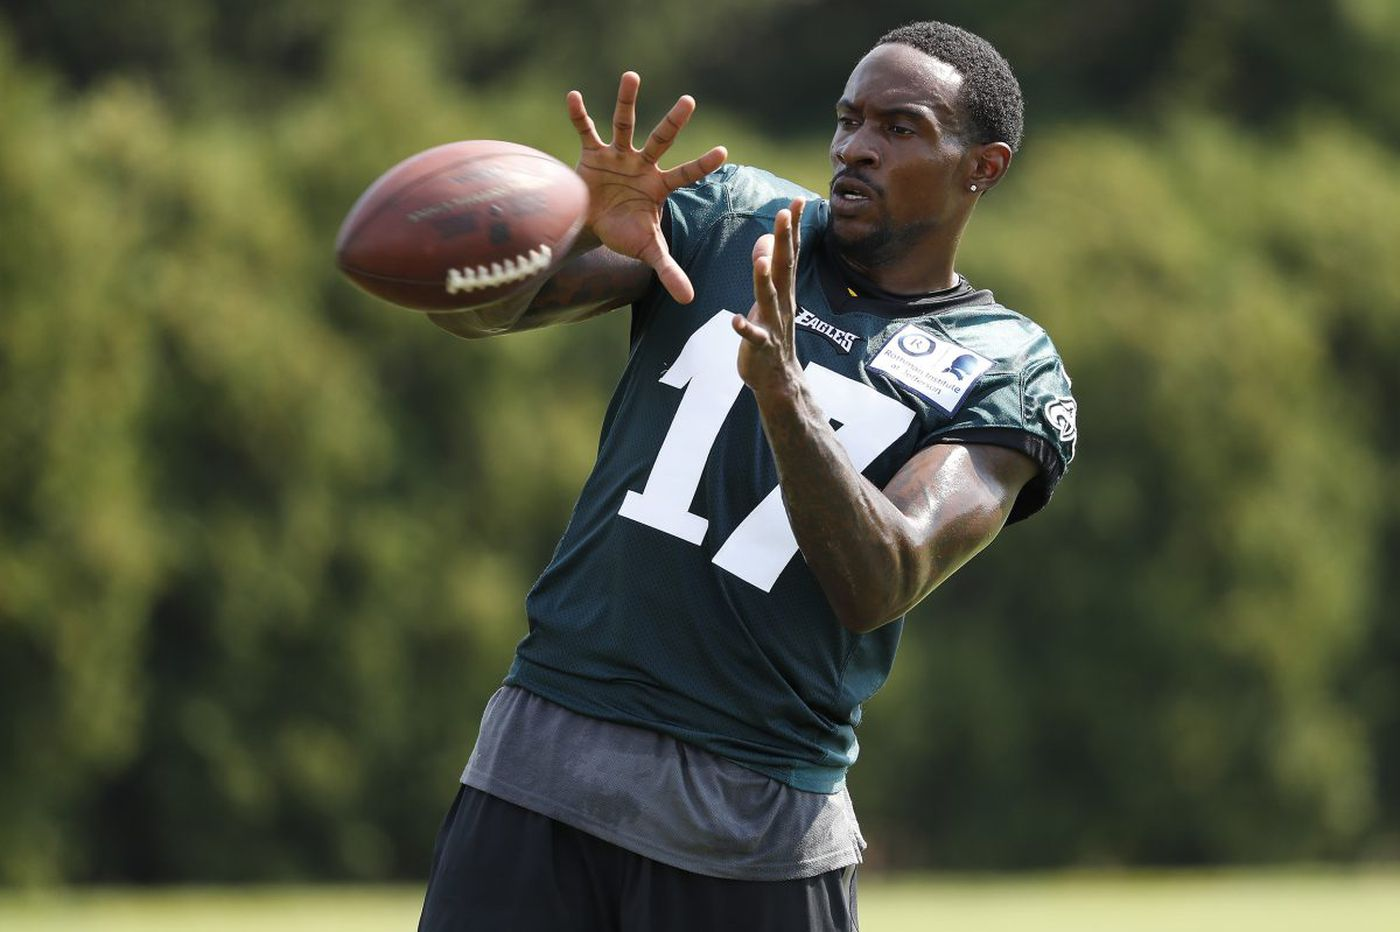 Eagles WR Alshon Jeffery sidelined for second consecutive practice